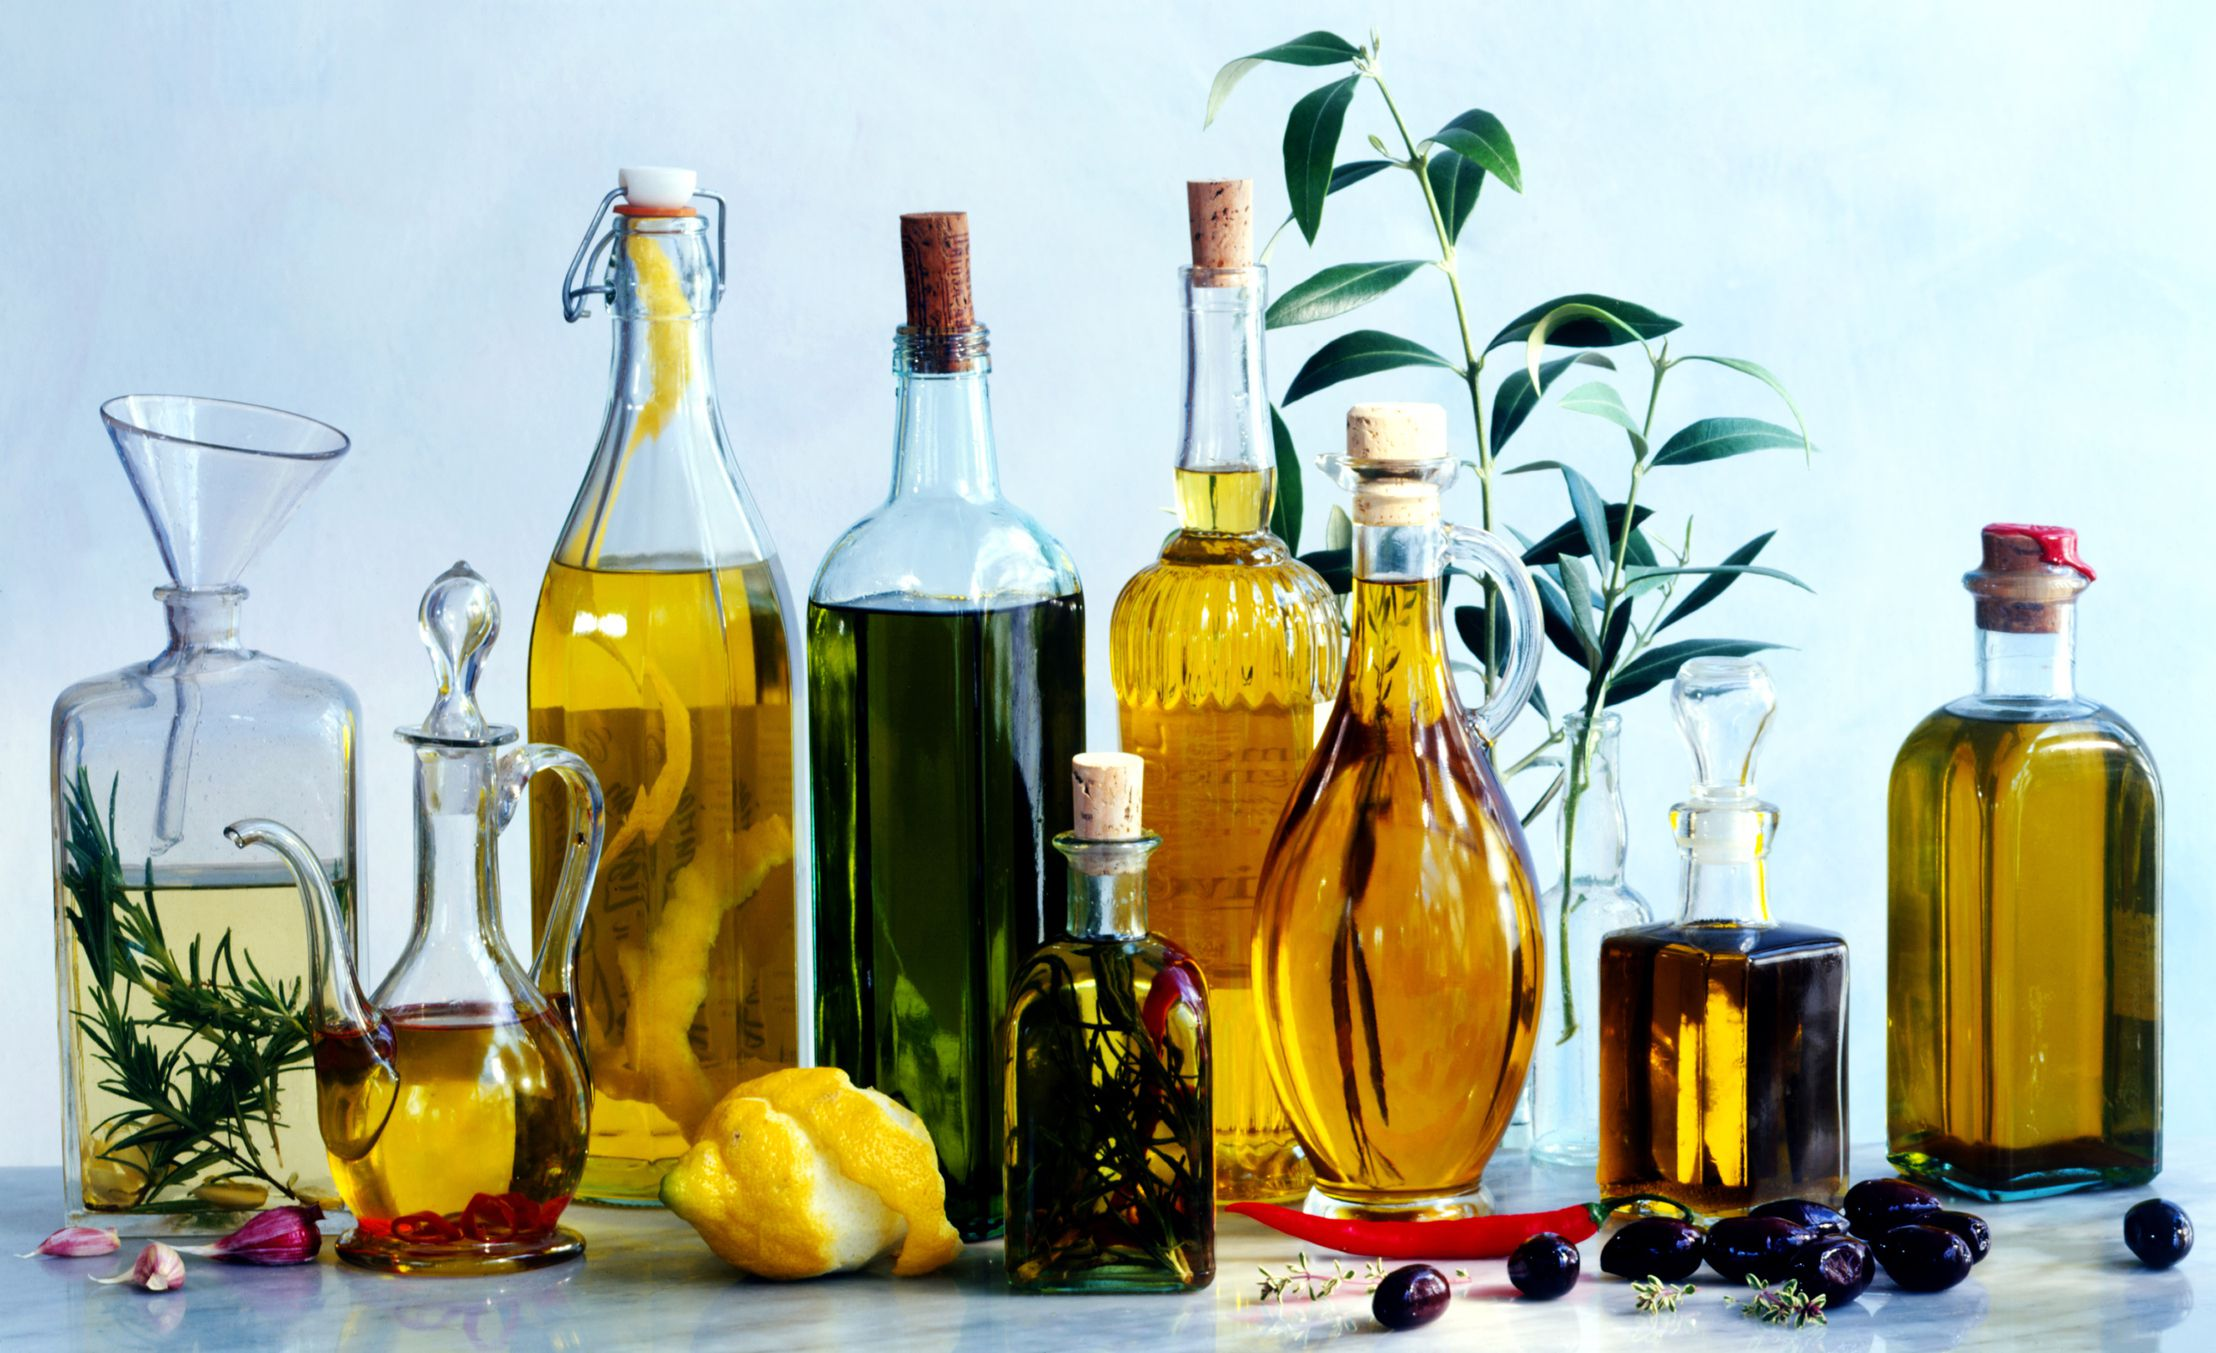 Learn How to Make Homemade Herbal Oils to Add Flavor to Your Food